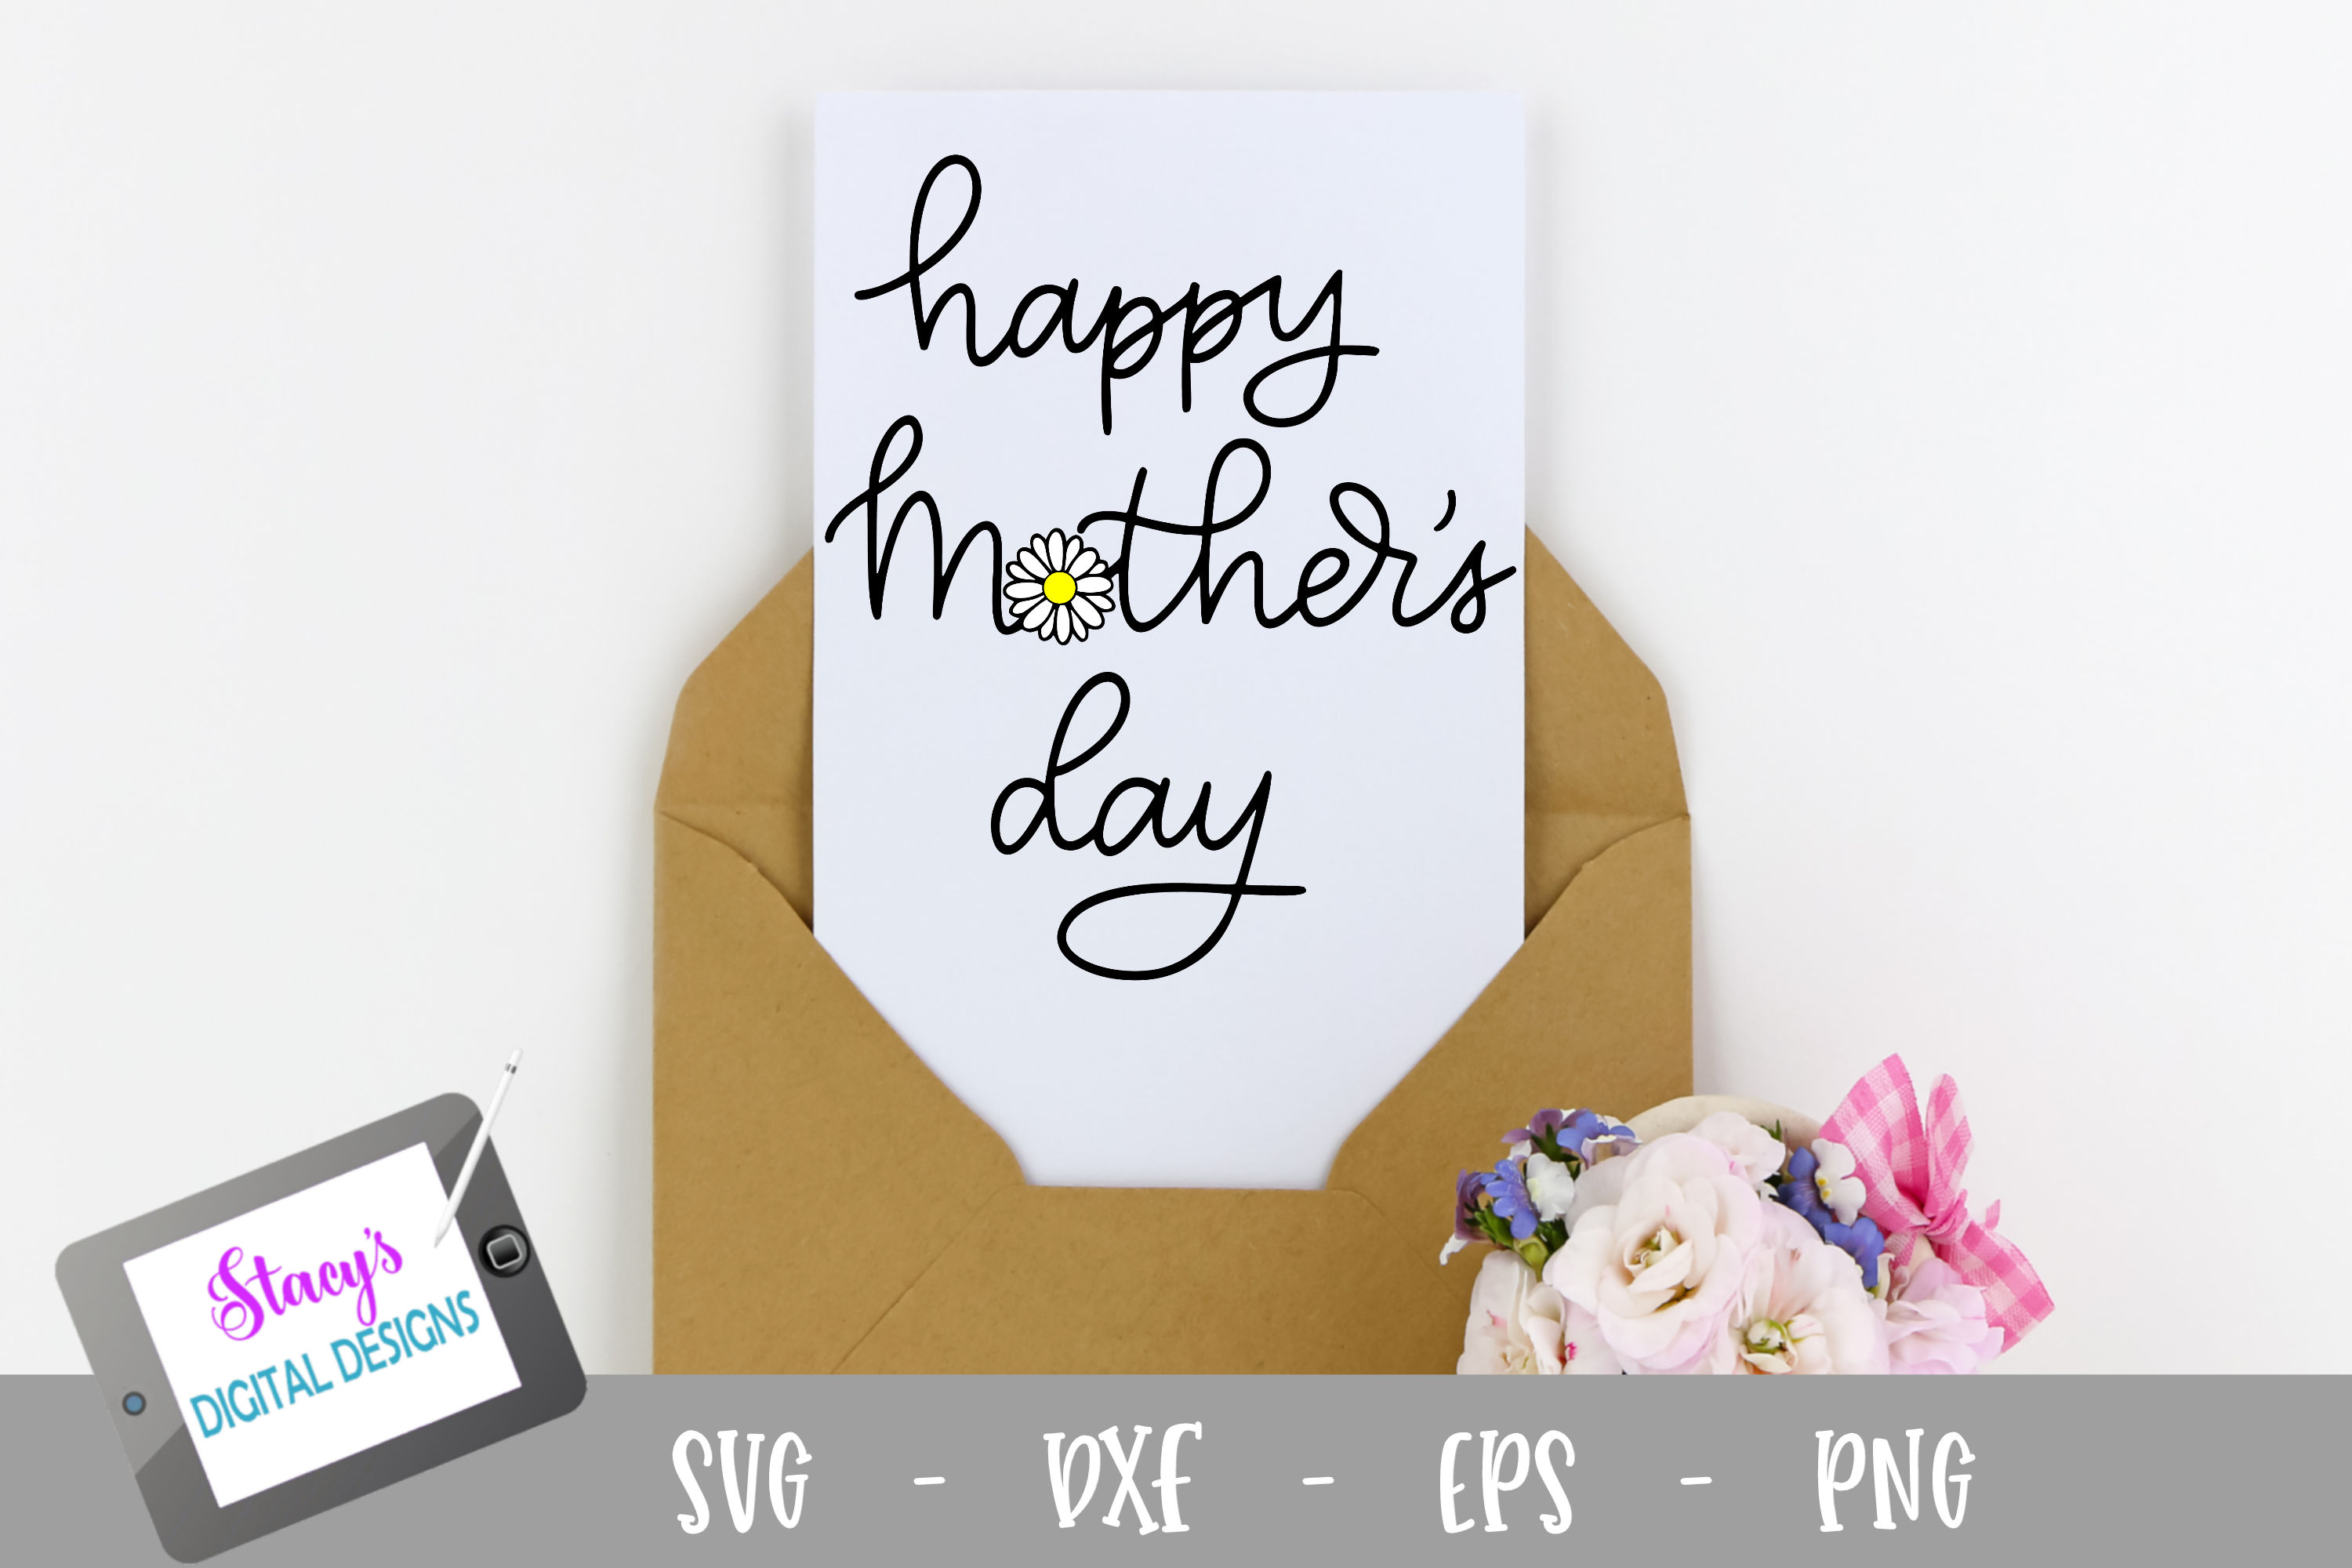 Happy Mother's Day SVG - with Daisy example image 1